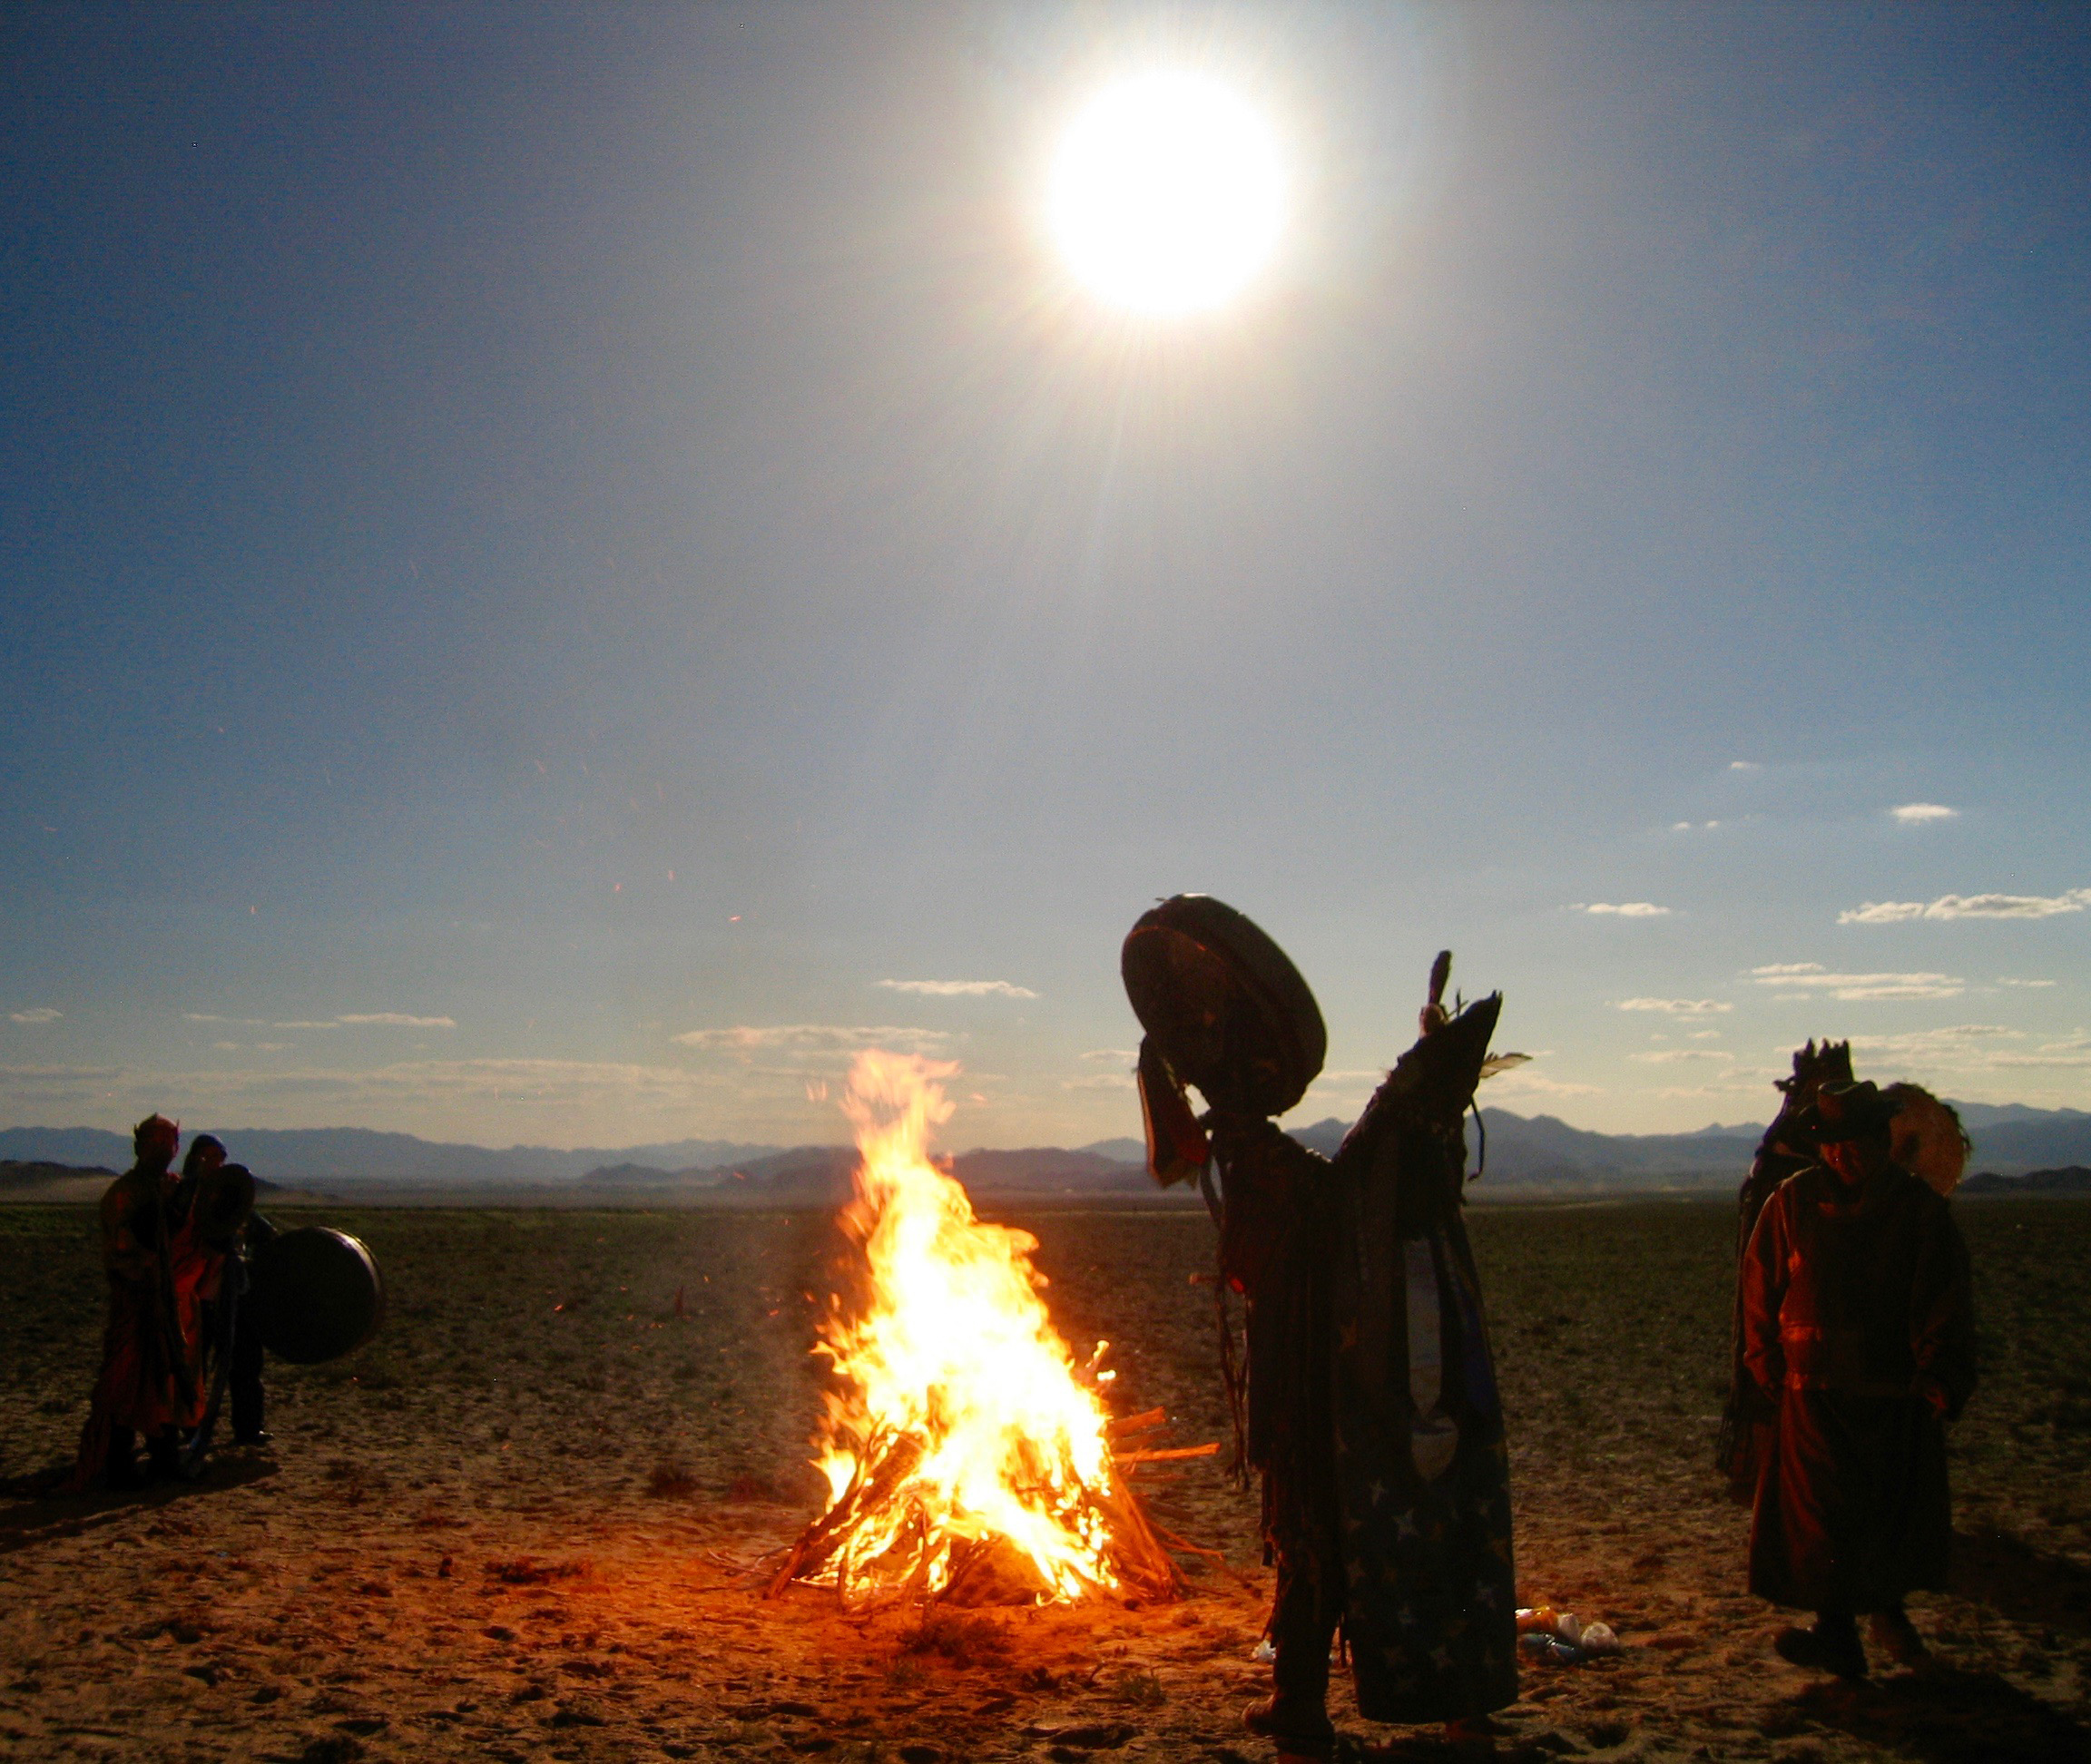 A Shaman ceremony during a total solar eclipse in Mongolia where Ray Jayawardhana, astrophysicist and Dean of the Faculty of Science, was to watch the event